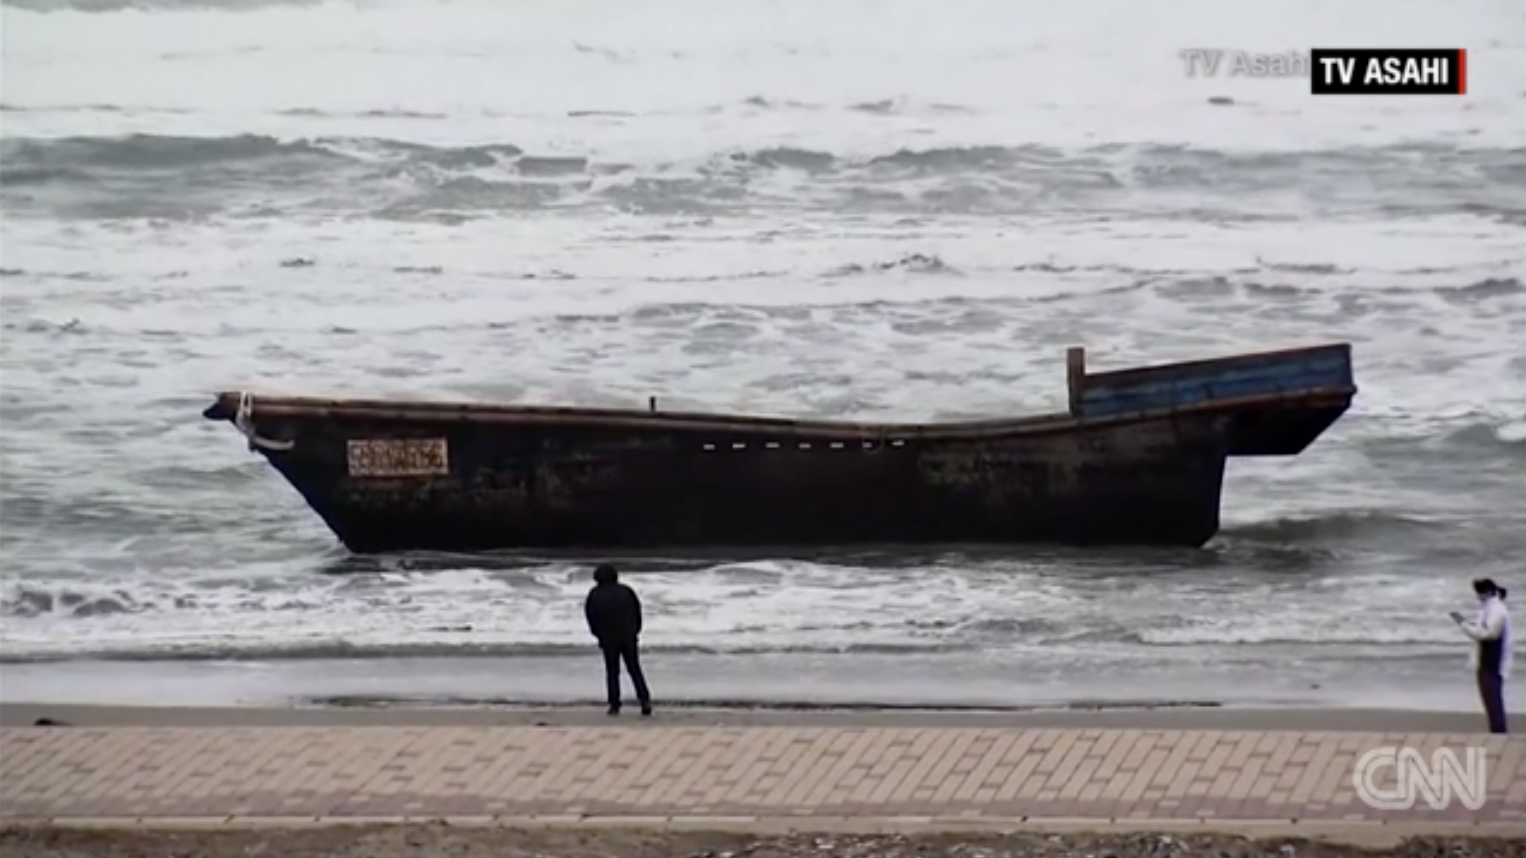 A Ghost Ship Carrying 8 'Skeletonised' Bodies Washed Up In Japan, And It's Not The First Time